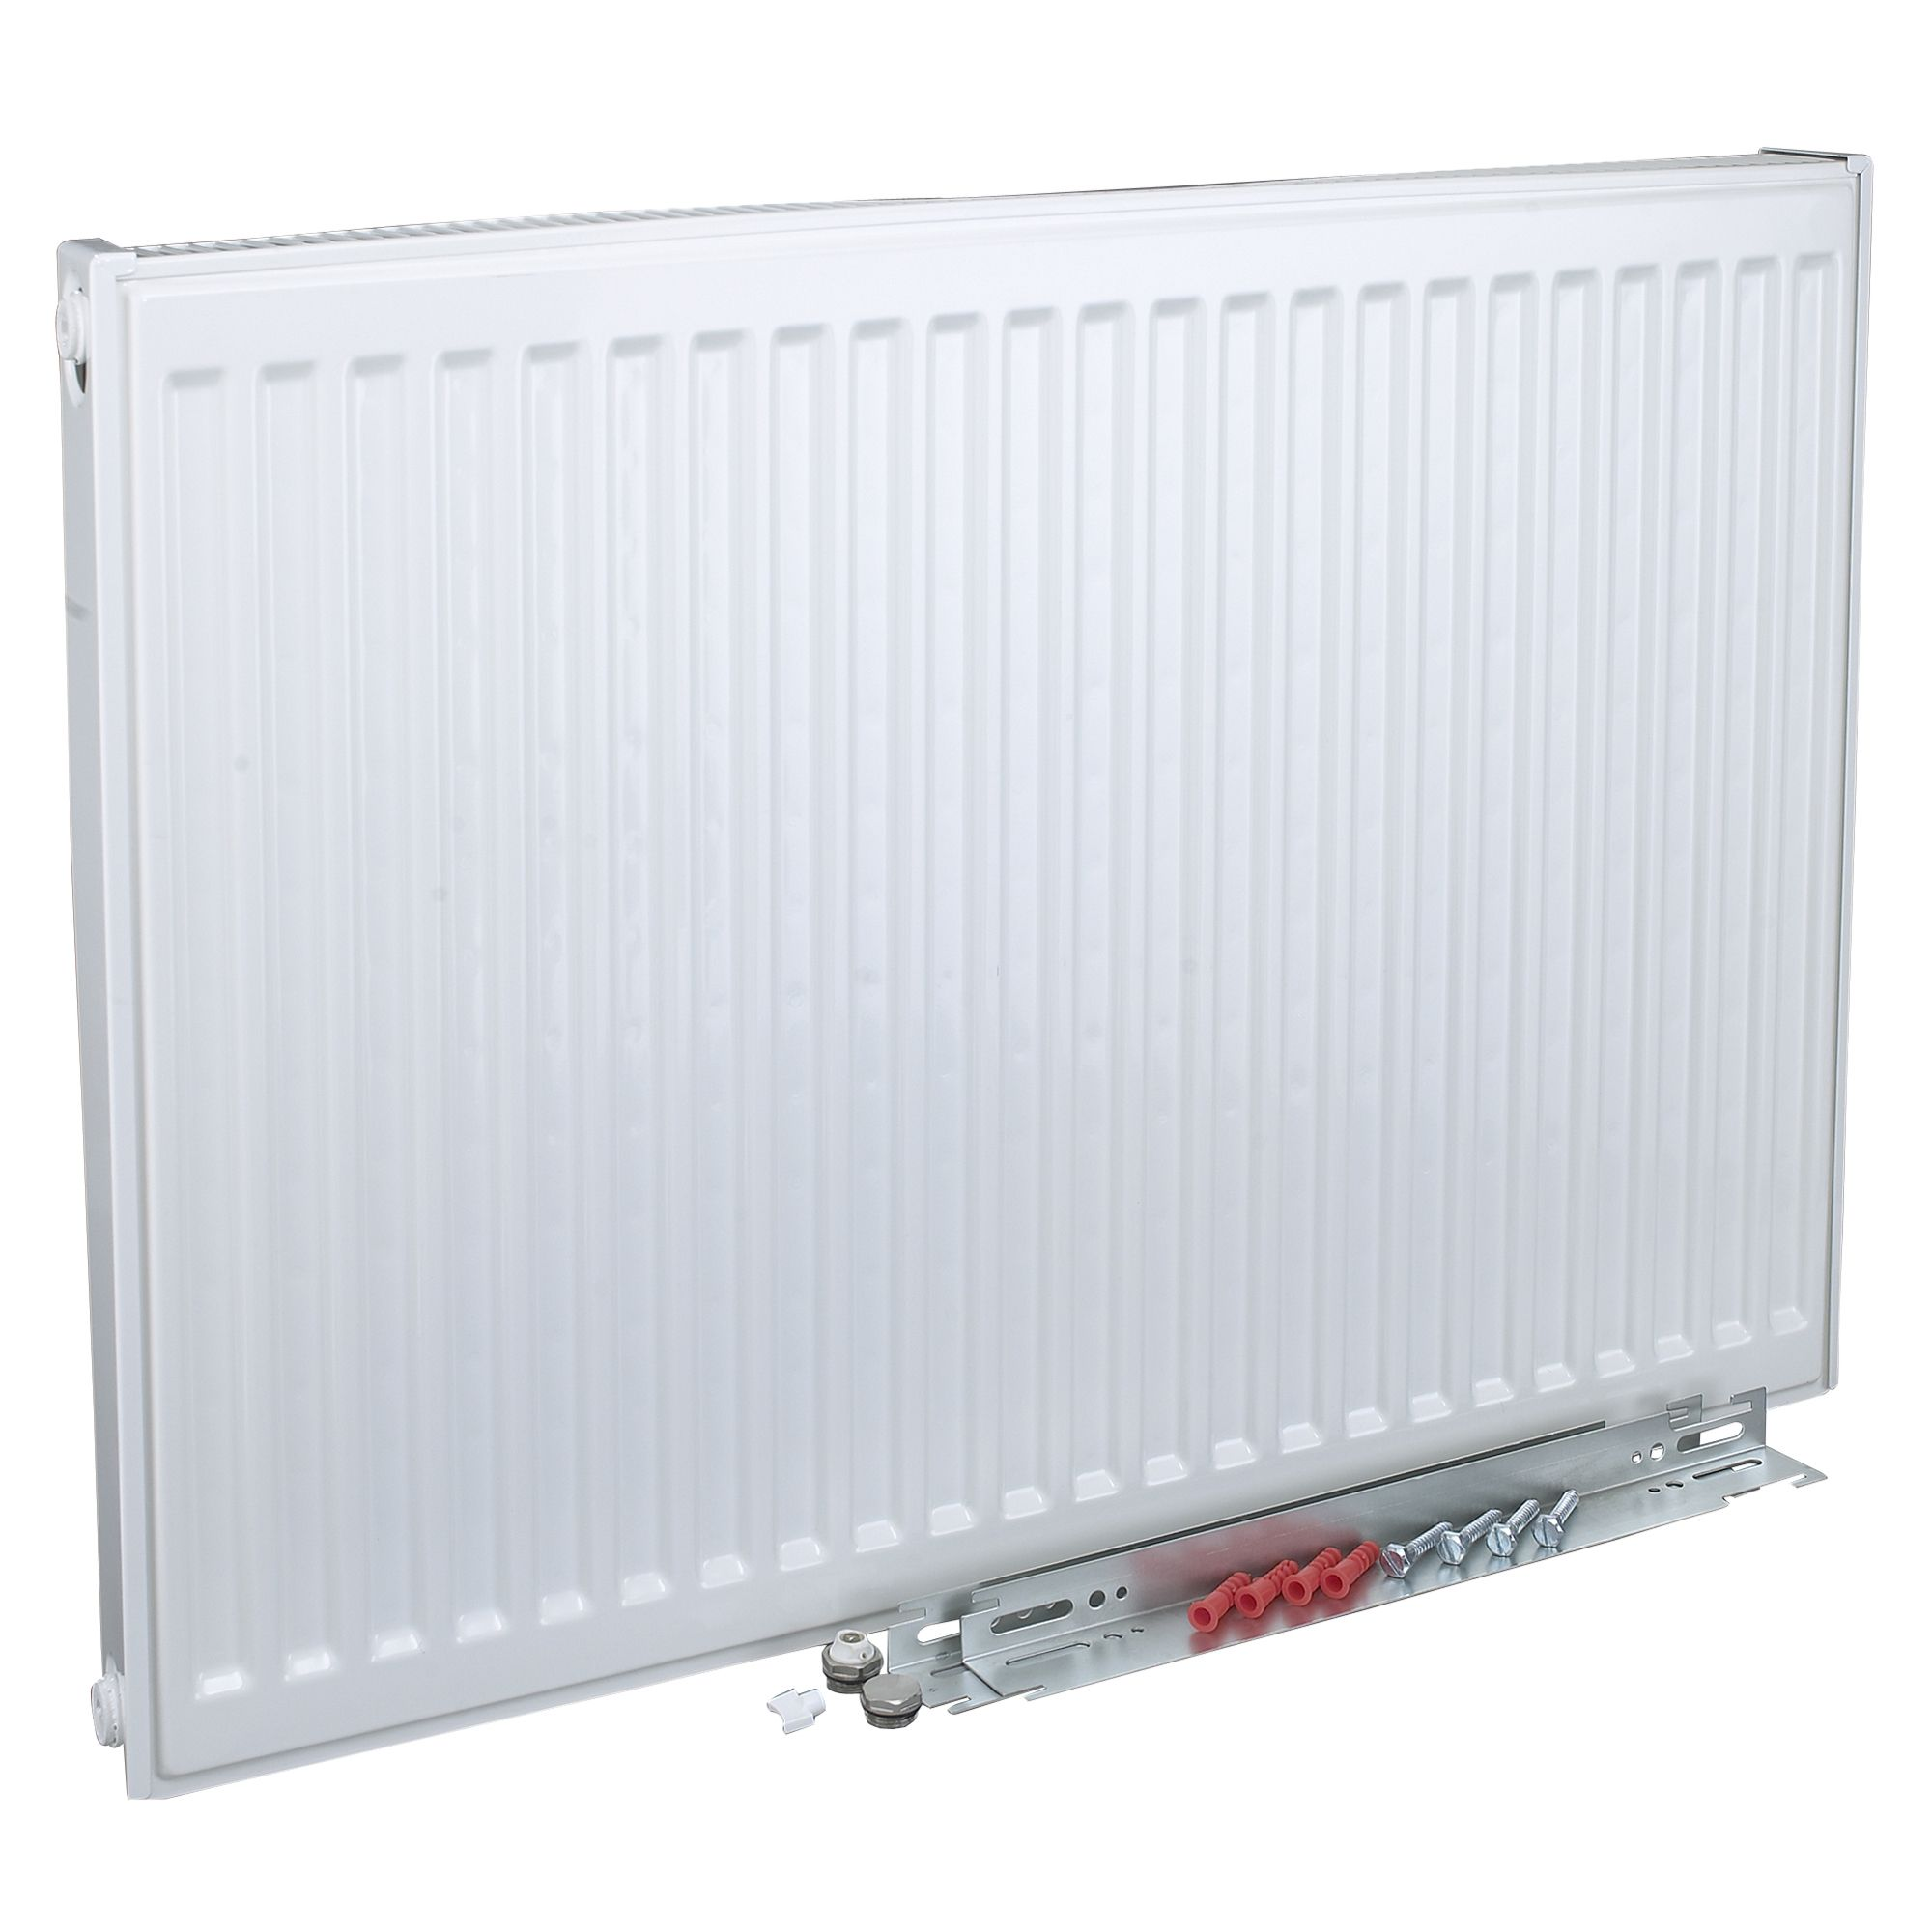 Kudox Type 11 Single Panel Radiator H 400mm W 1200mm